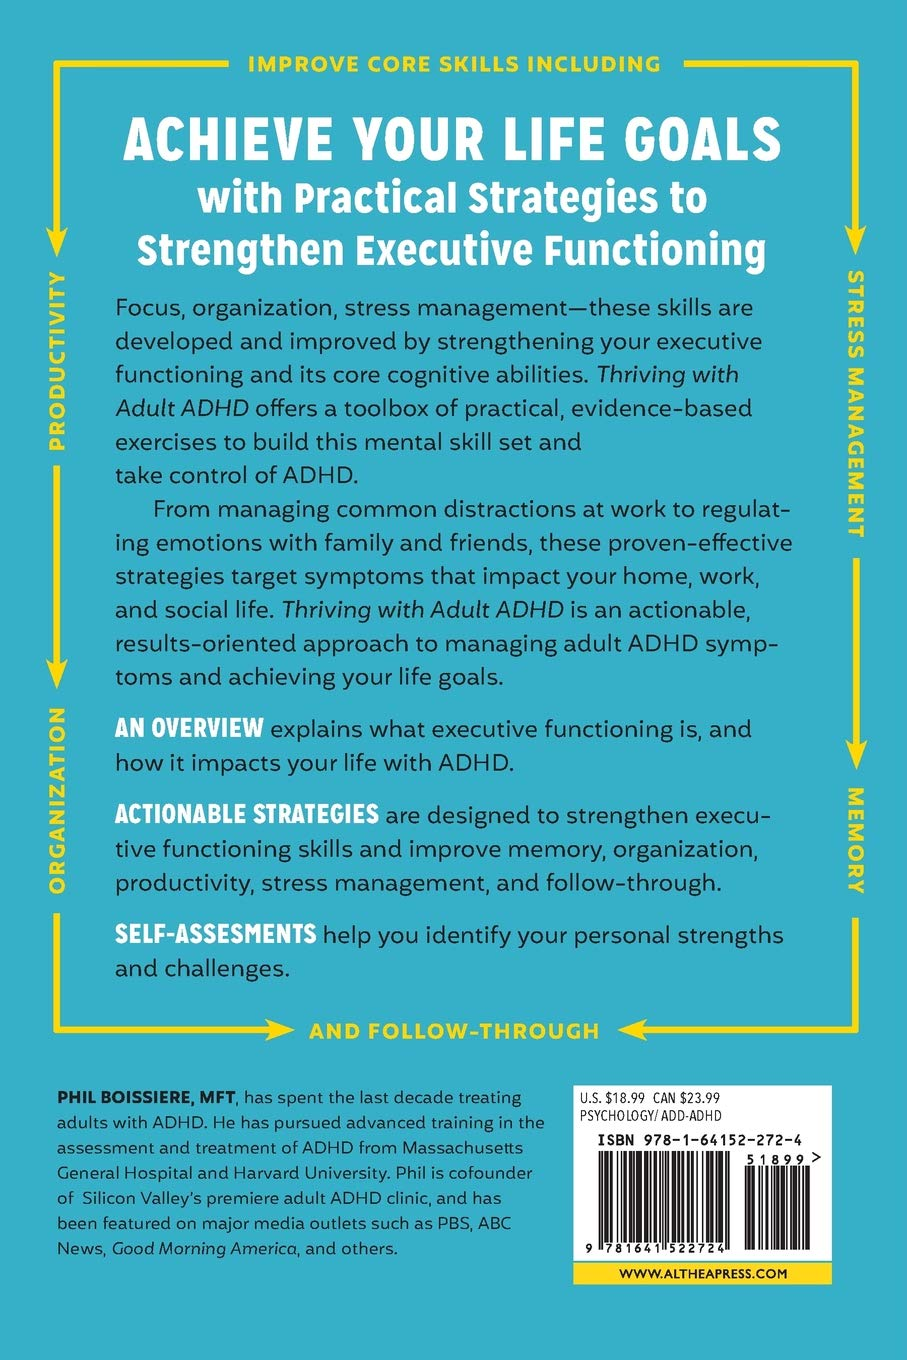 Strengthening Executive Function >> Thriving With Adult Adhd Skills To Strengthen Executive Functioning